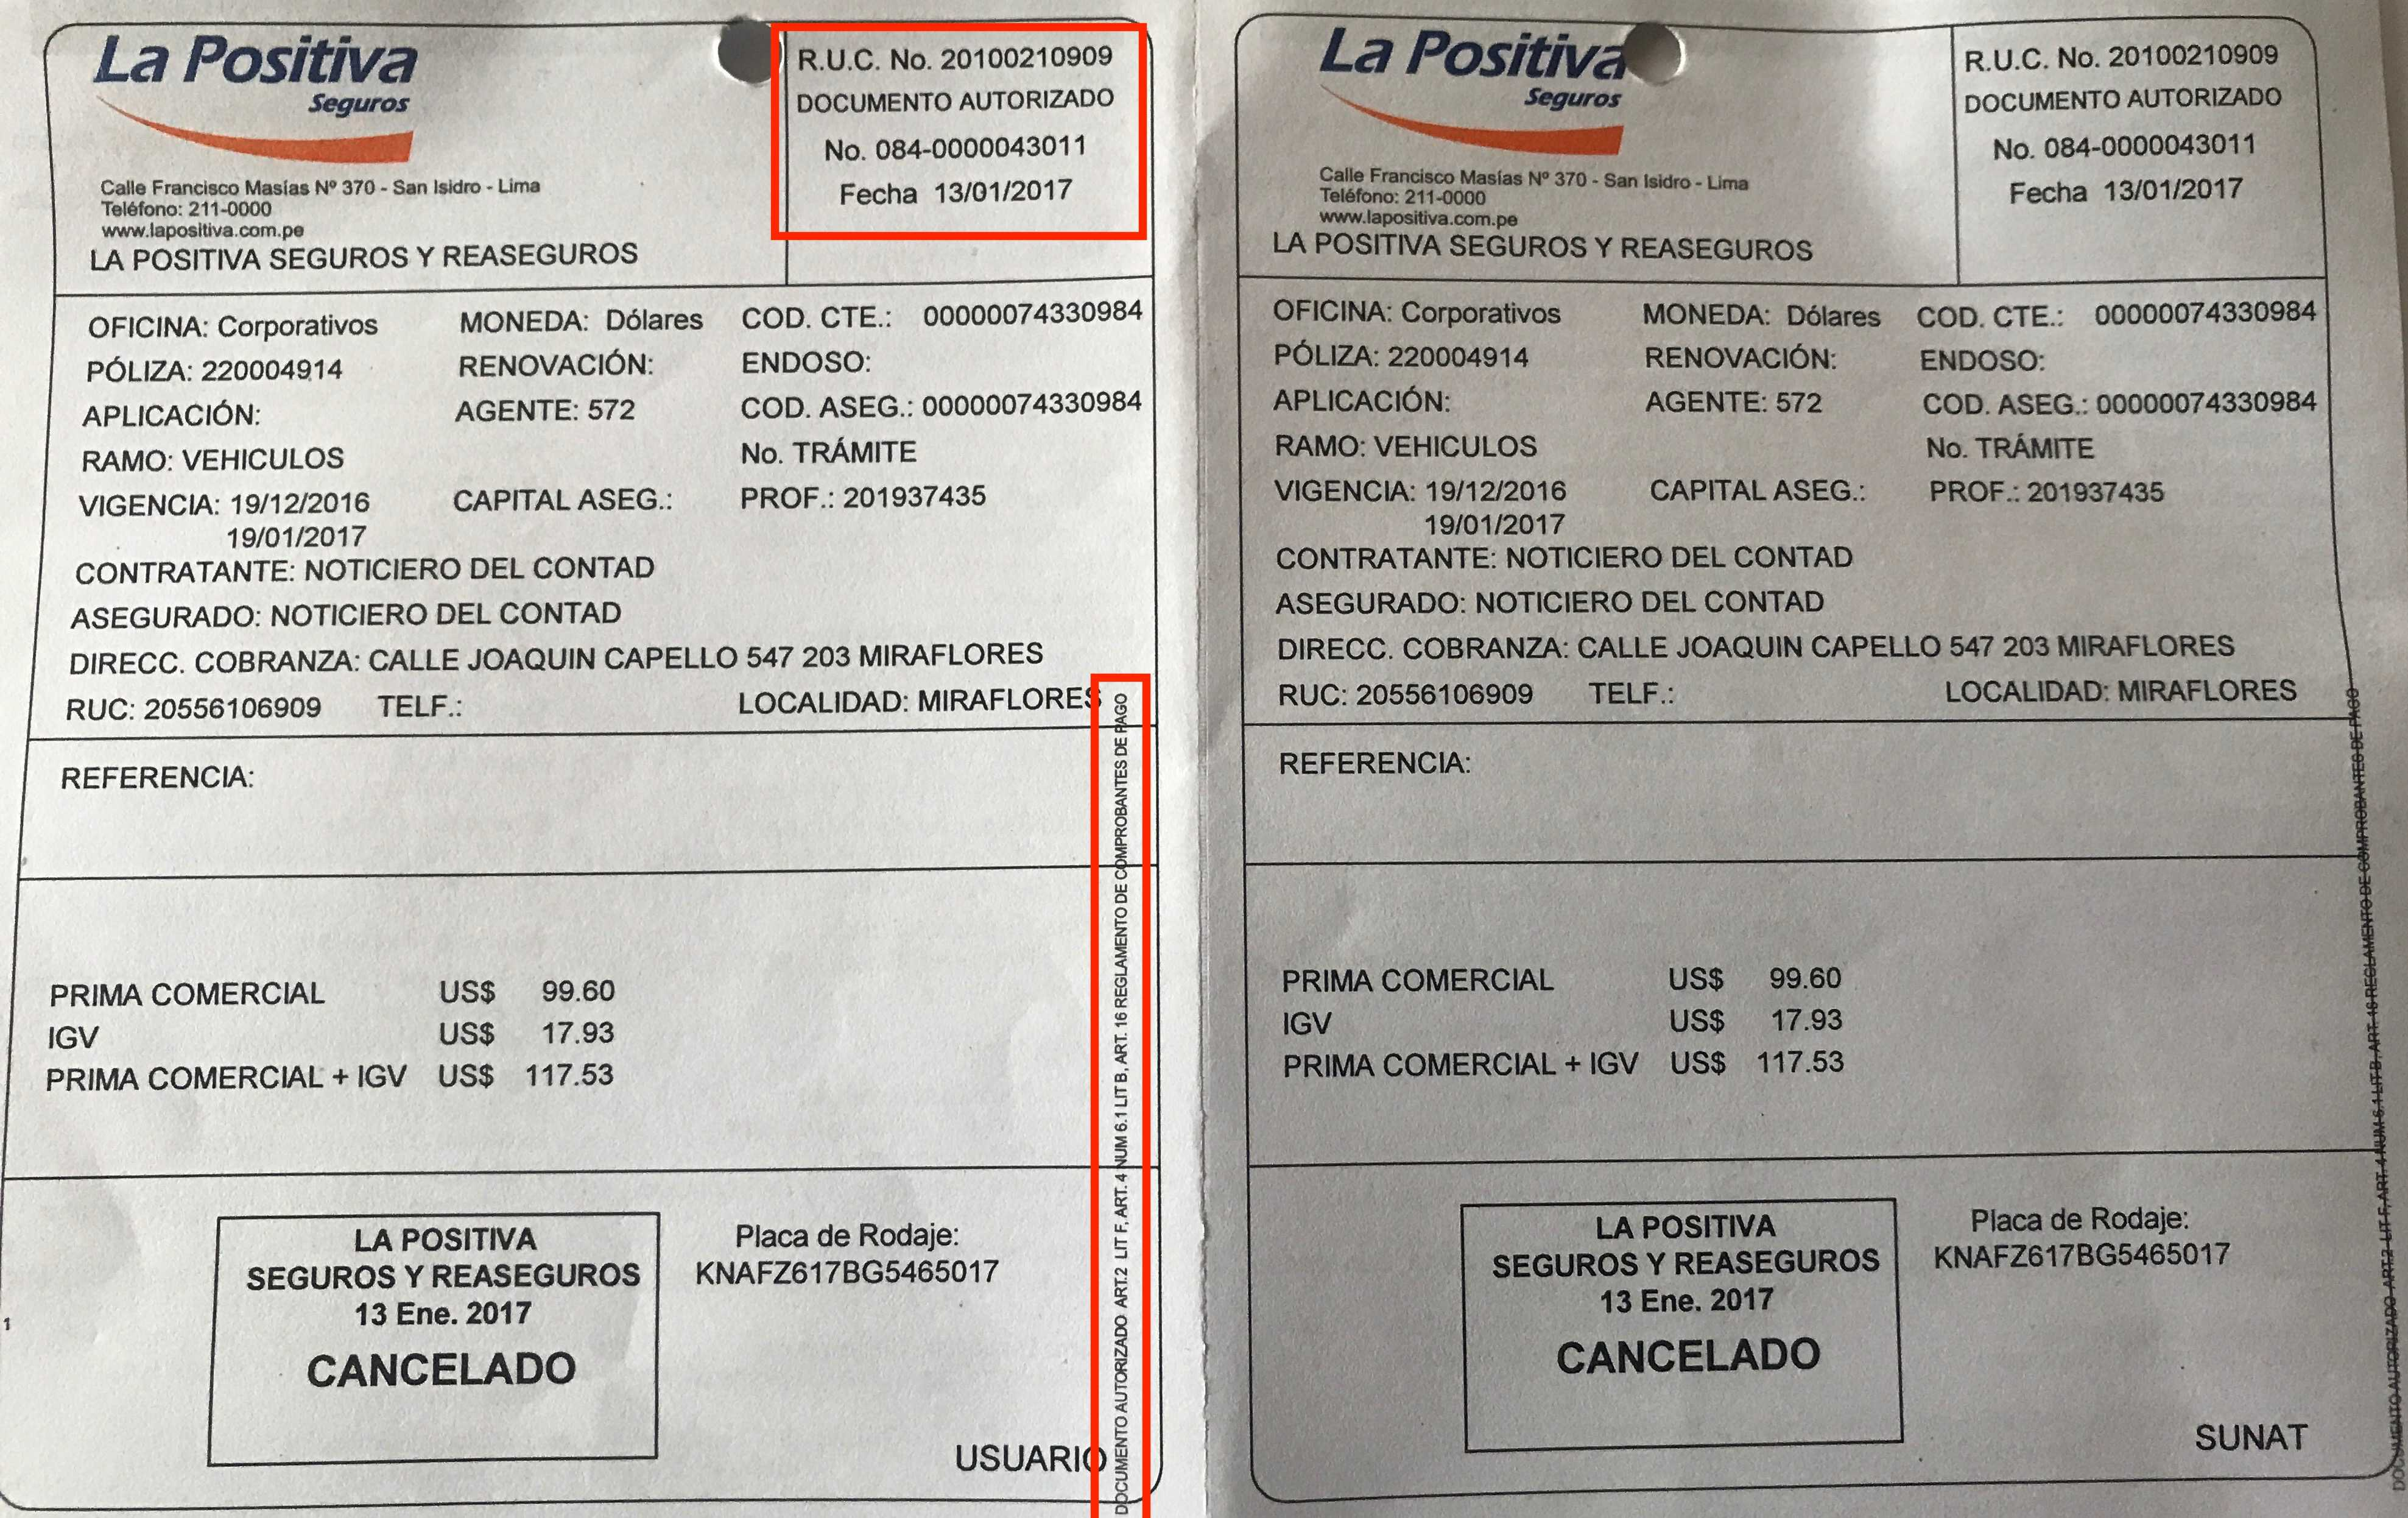 Documento Autorizado Seguros